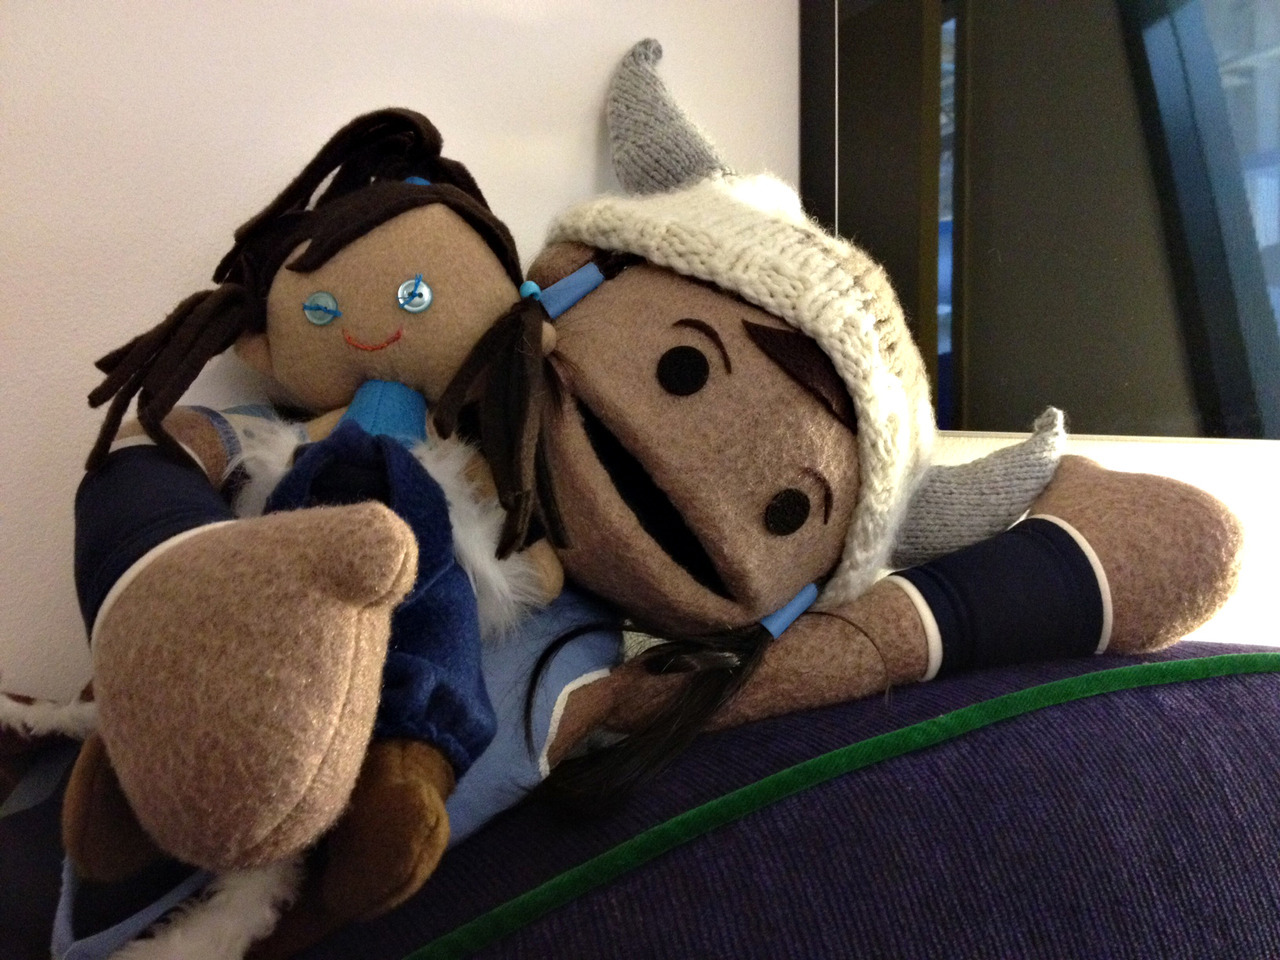 Lauren Montgomery's mom made us these awesome Korra dolls, which my Korra puppet has claimed as her own.